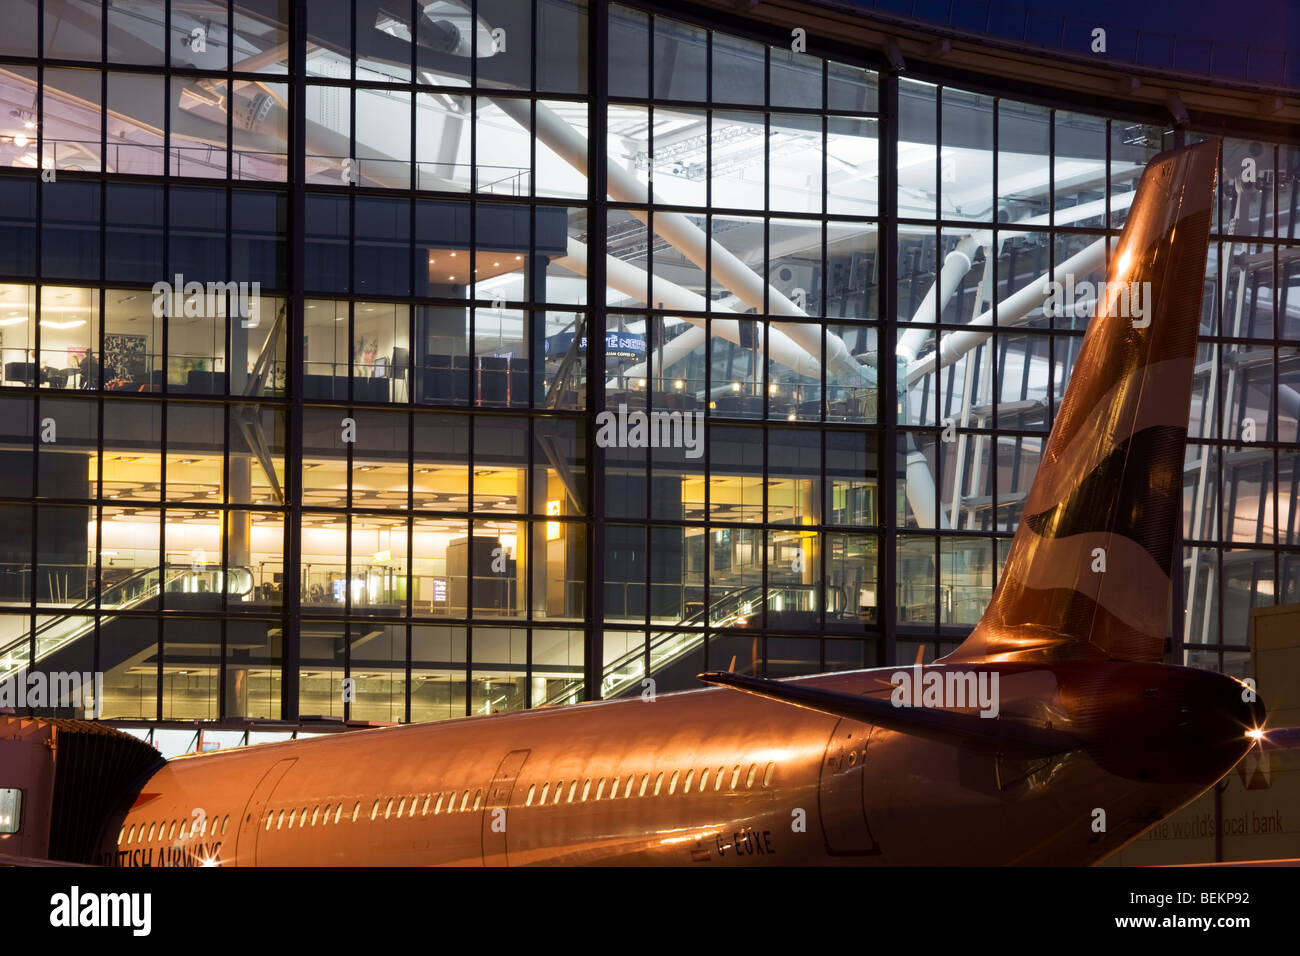 A British Airways jet aircraft is parked at night at a departure gate at Heathrow Airport's Terminal 5 building - Stock Image